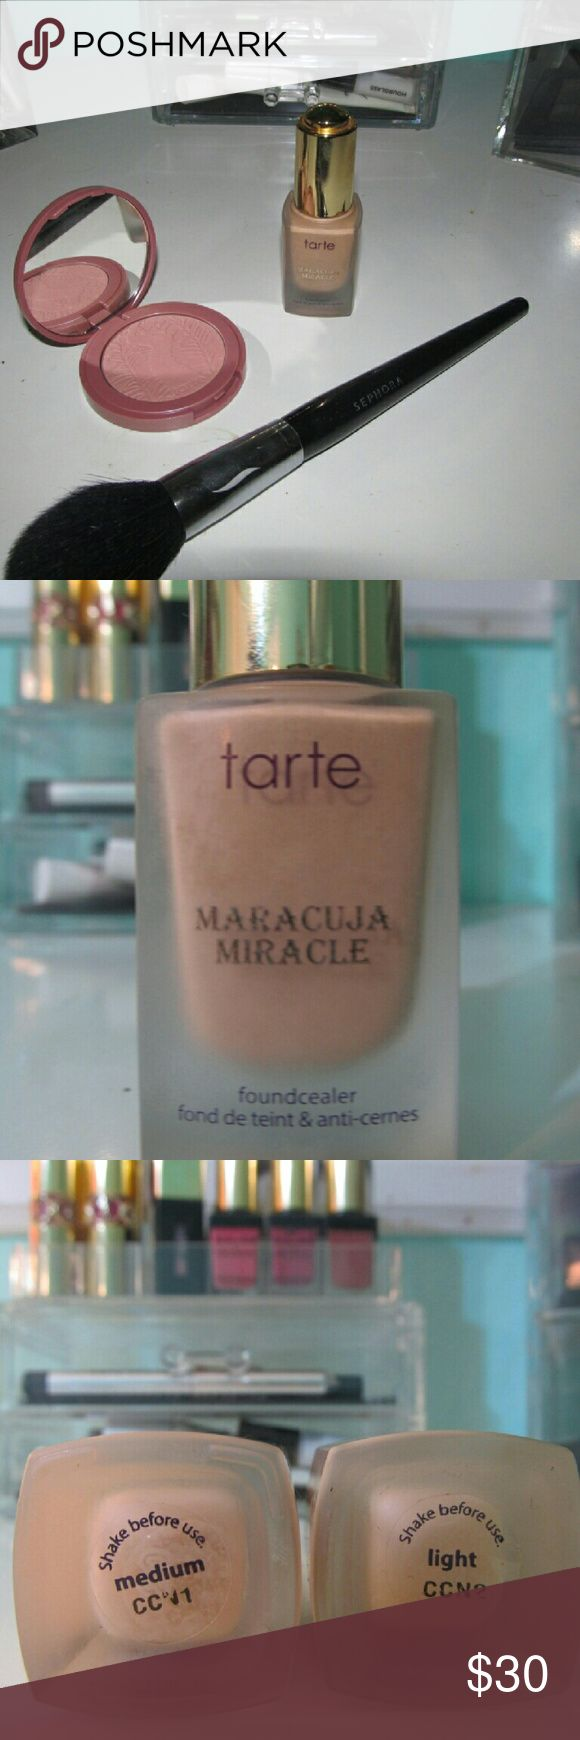 Tarte Maracuja Miracle Foundcealer light & medium Can't get these anymore. It was a special edition on QVC. I bought 2 to mix colors because they were out of my color now they're both too dark for me! I'm getting rid of tons of foundation. I have too many!  CONDITION: Both used Medium was maybe used once, maybe twice. Light was used maybe 4 times. Their both practically full.  DESCRIPTION: Foundation and concealer in one. Serum foundation, has a dropper for applicator. Size: .51 fl. oz…